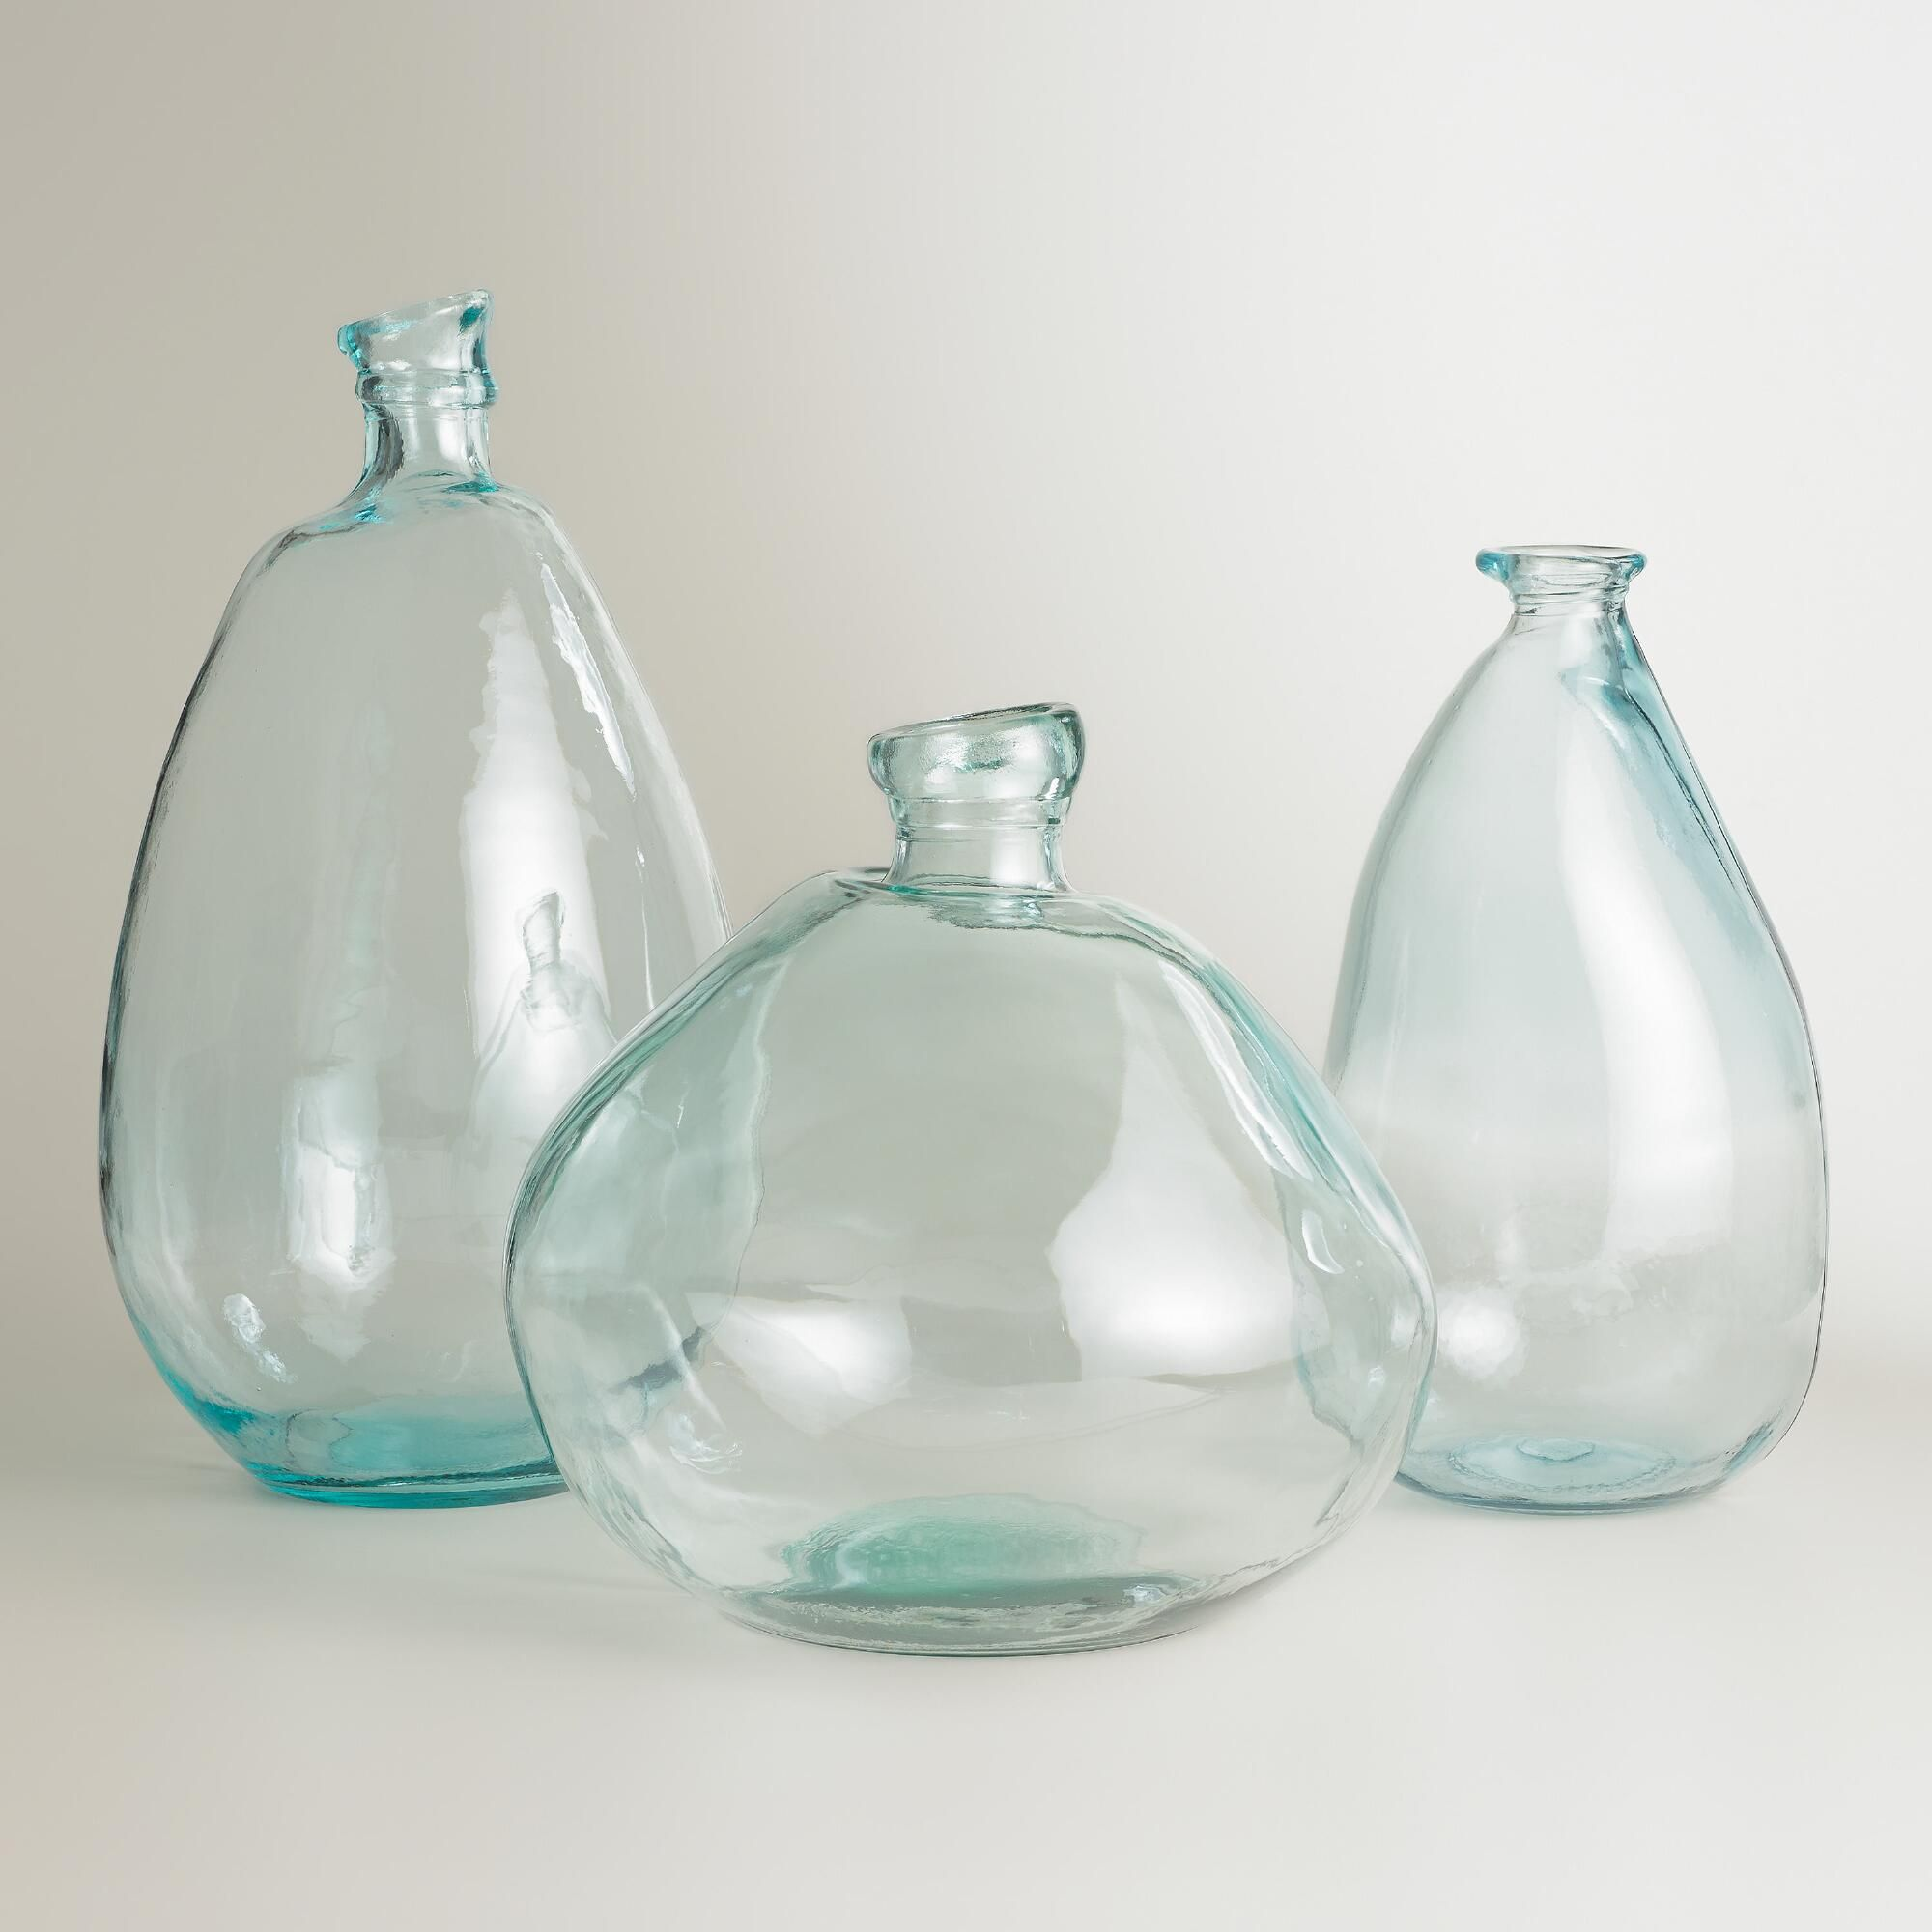 Available In Multiple Sizes, Our Recycled Glass Vases From Spain